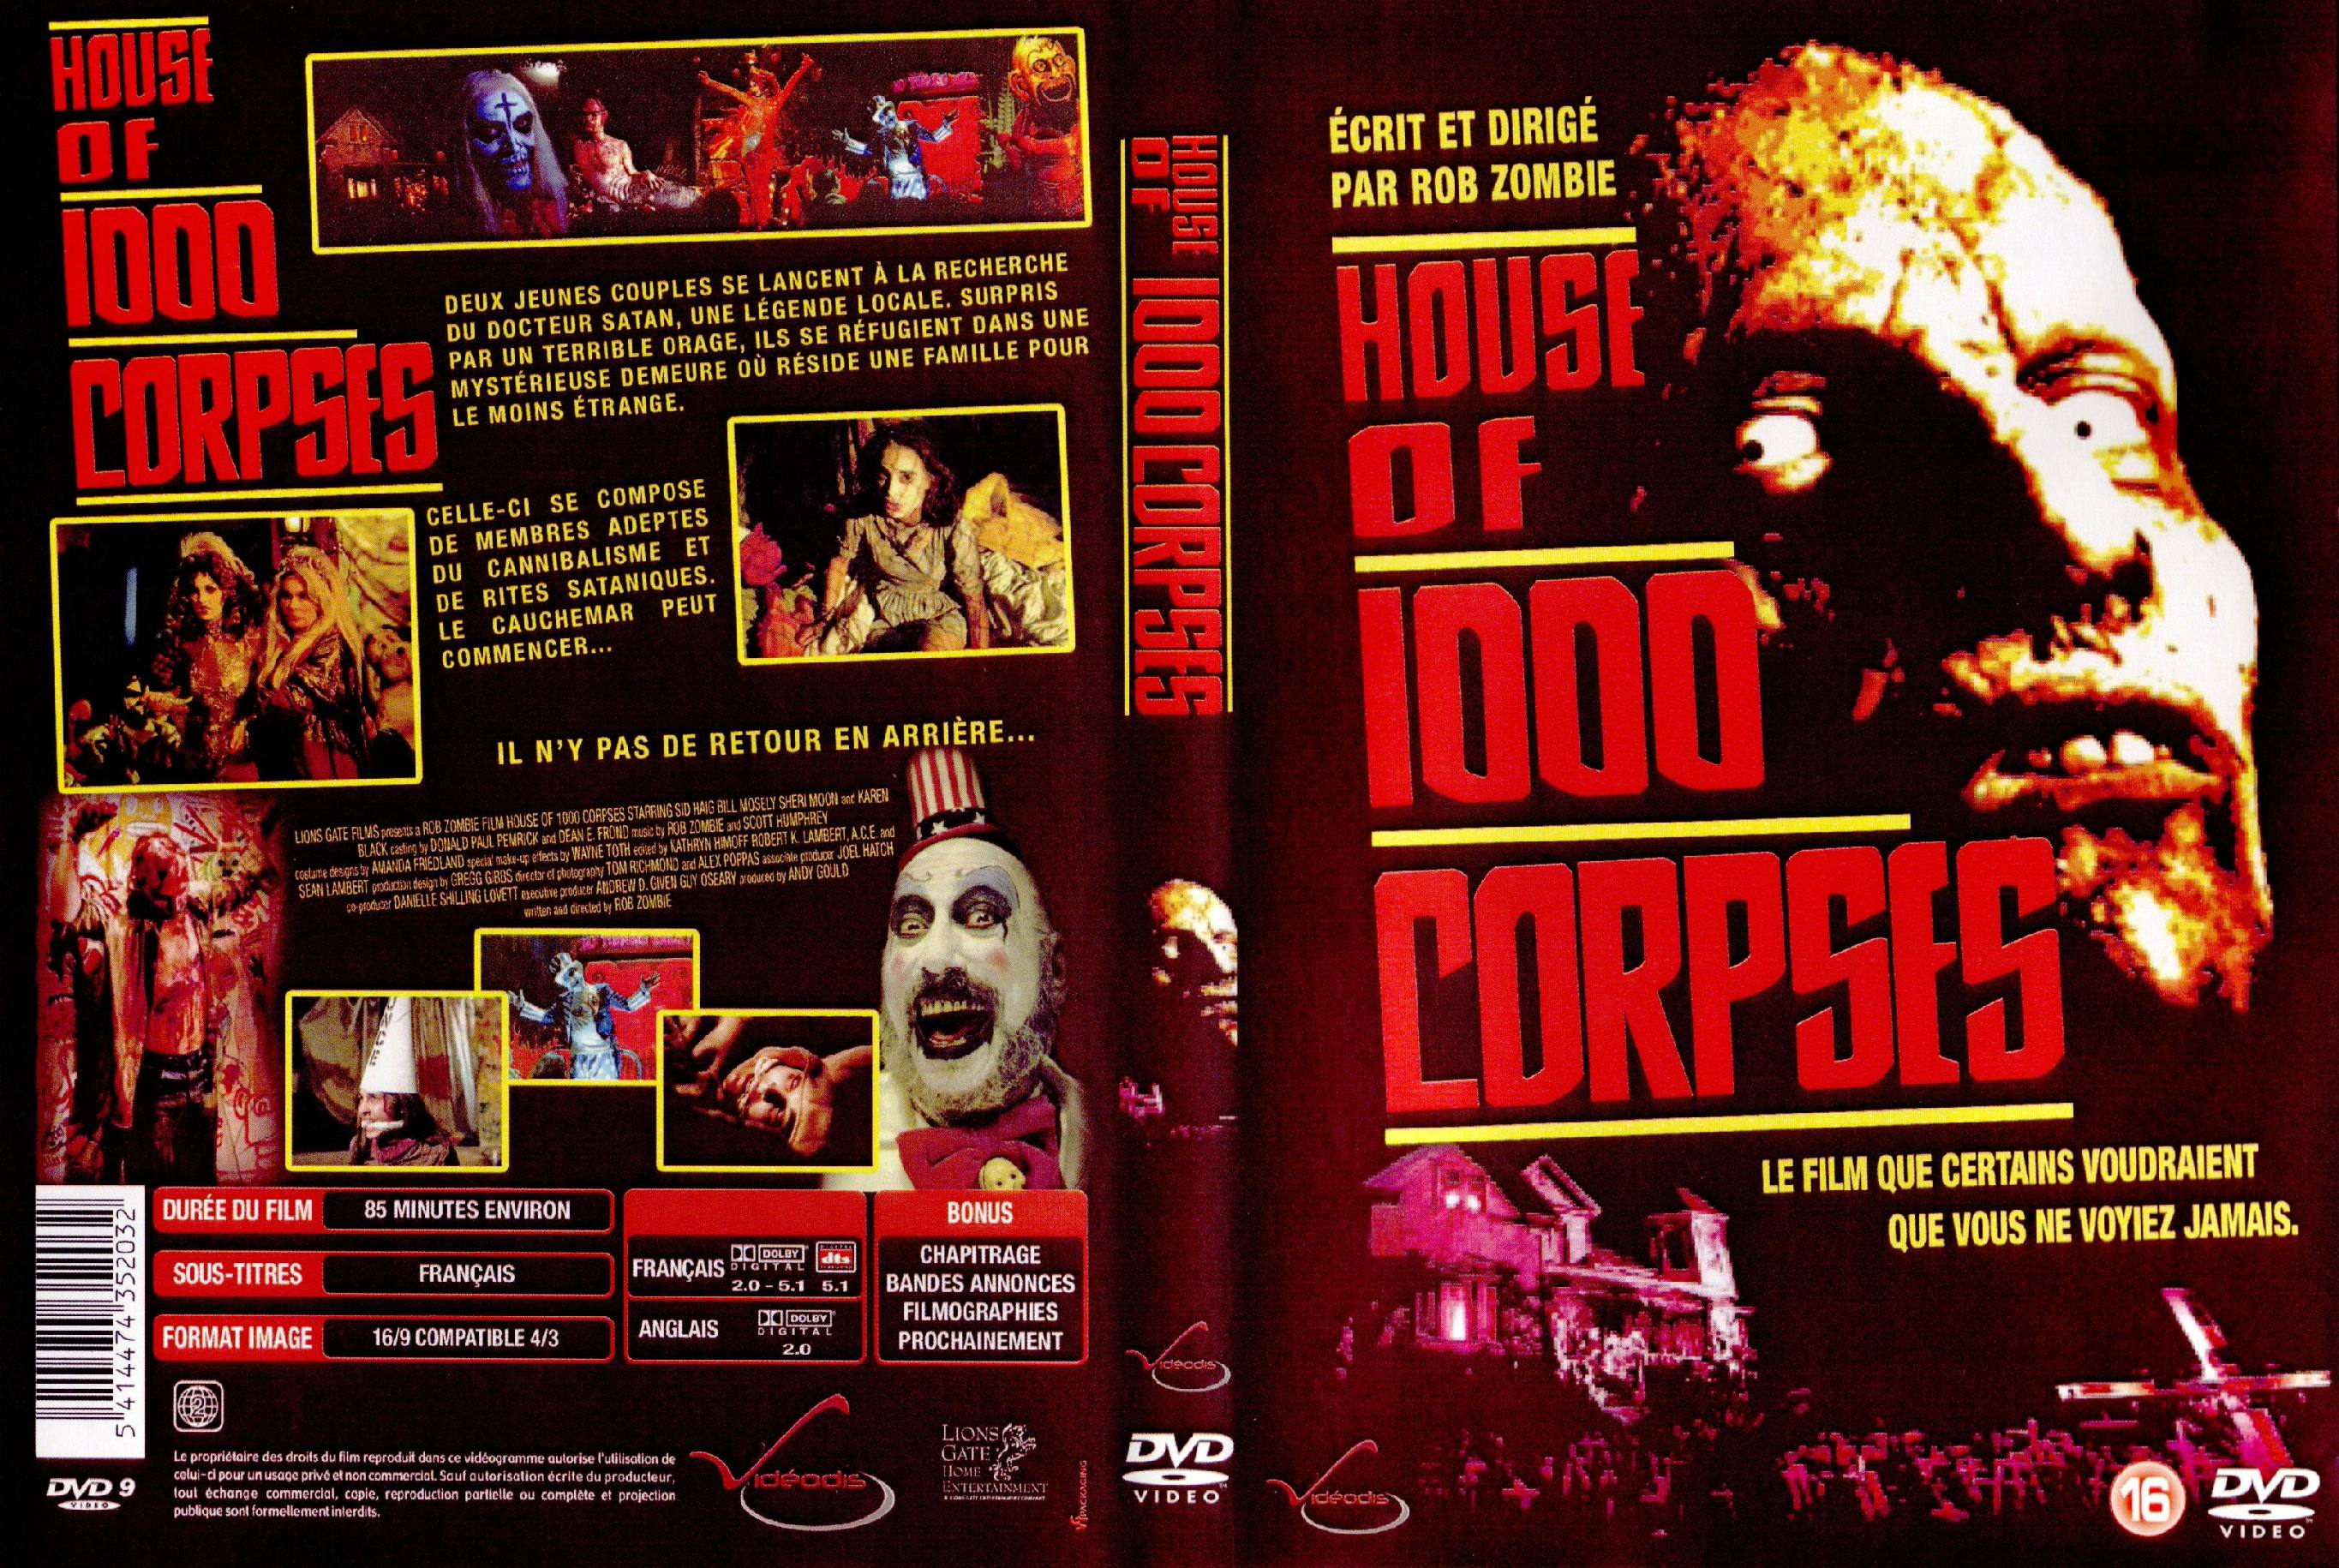 House Of 1000 Corpses Dark Horror Poster French F Wallpaper